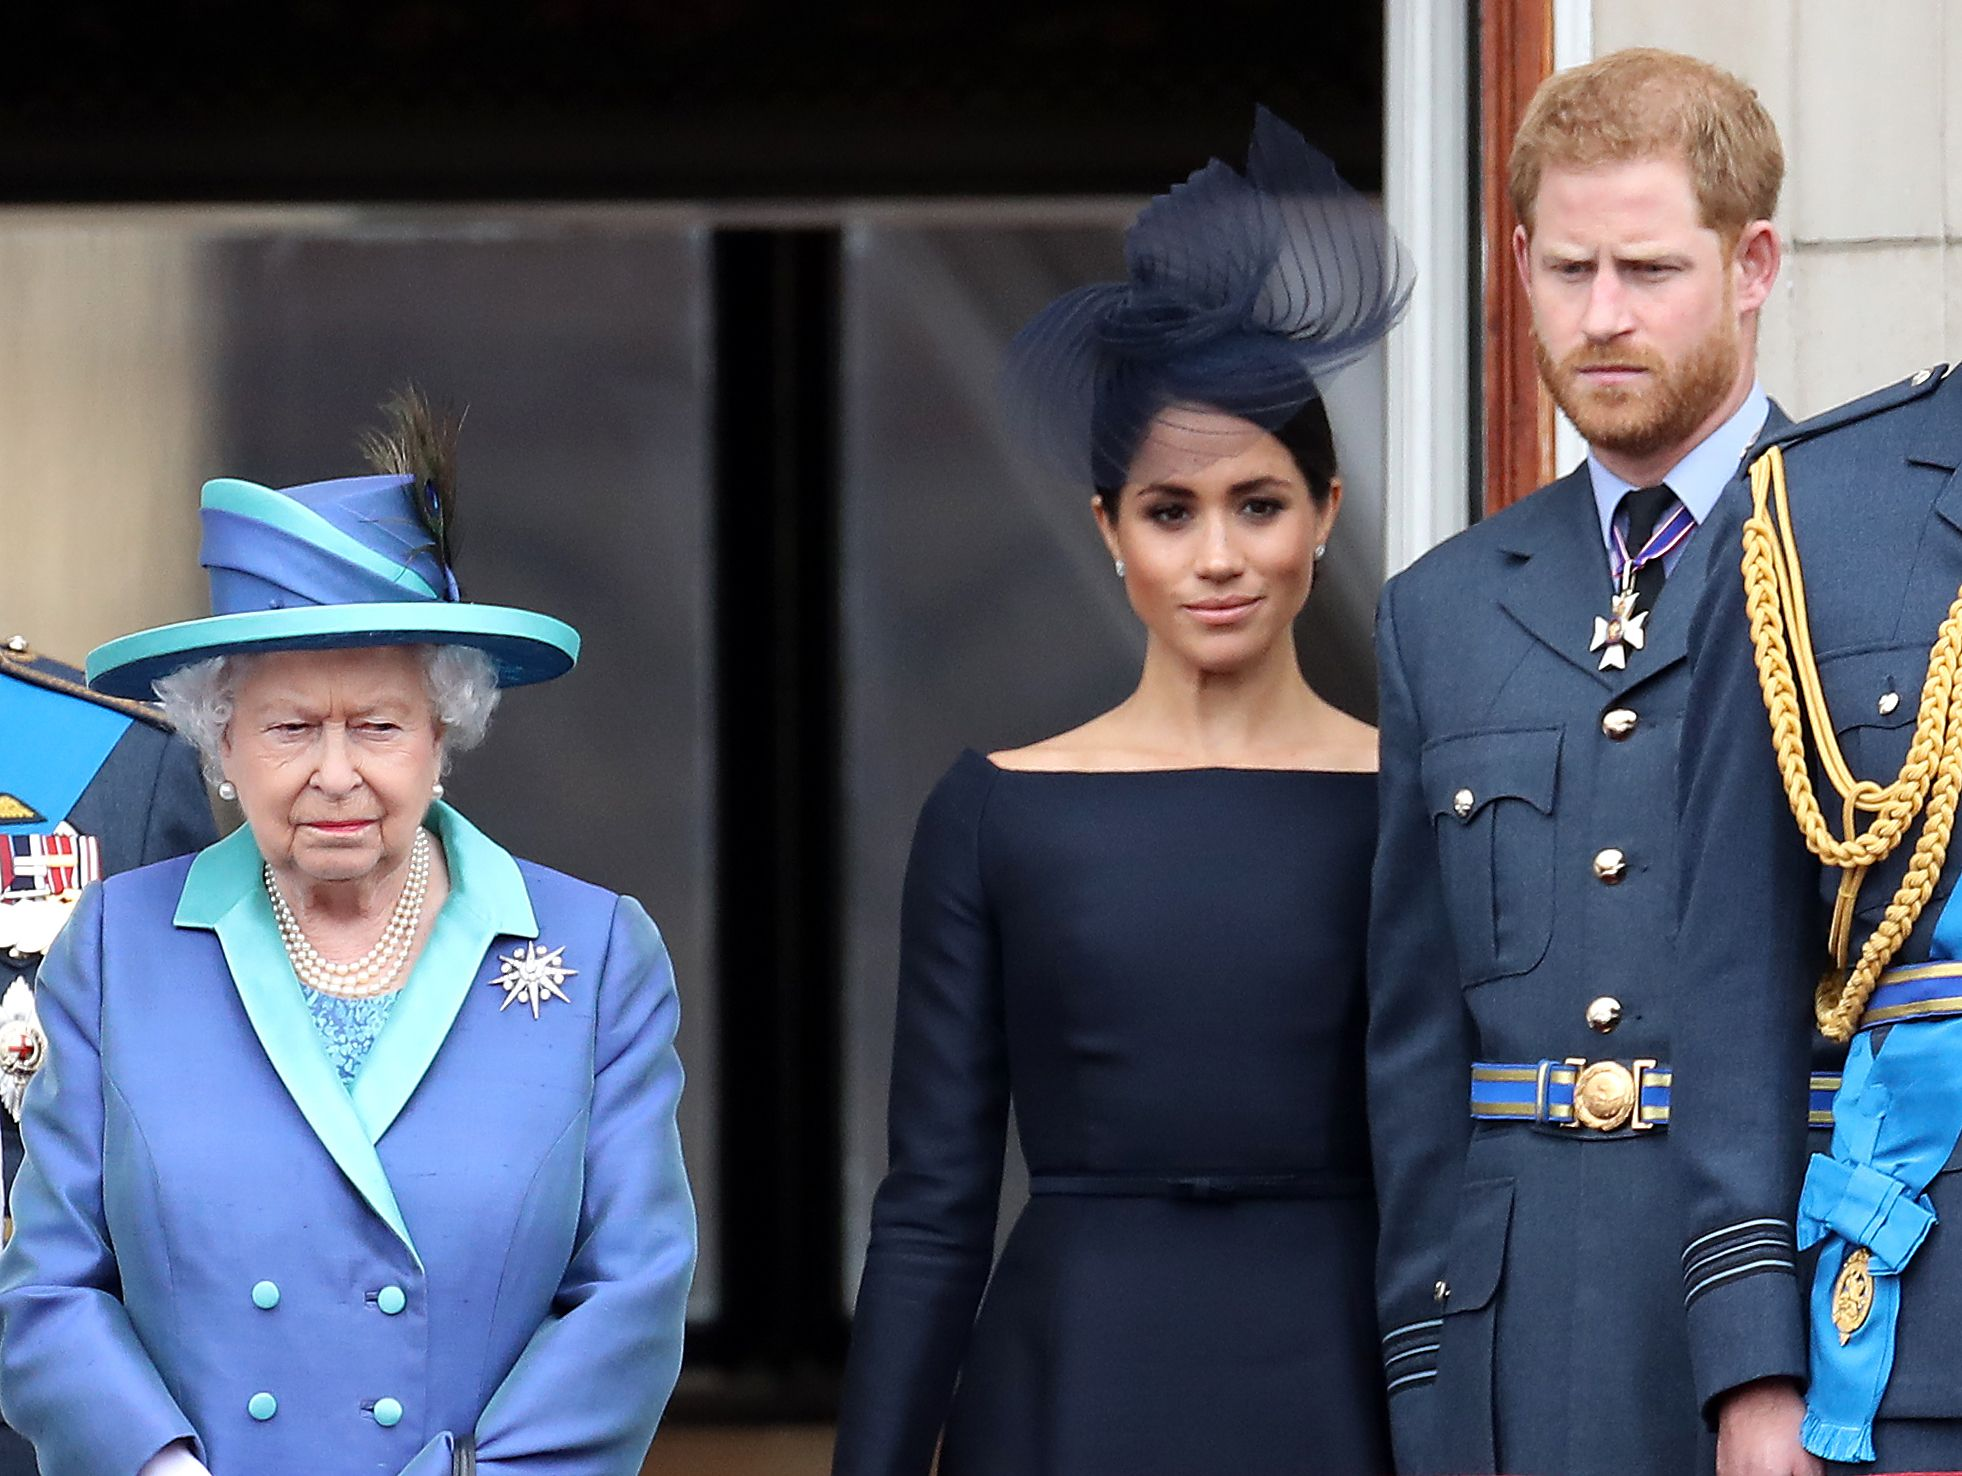 Buckingham Palace Issues Response to Prince Harry and Meghan Markle's Oprah Interview